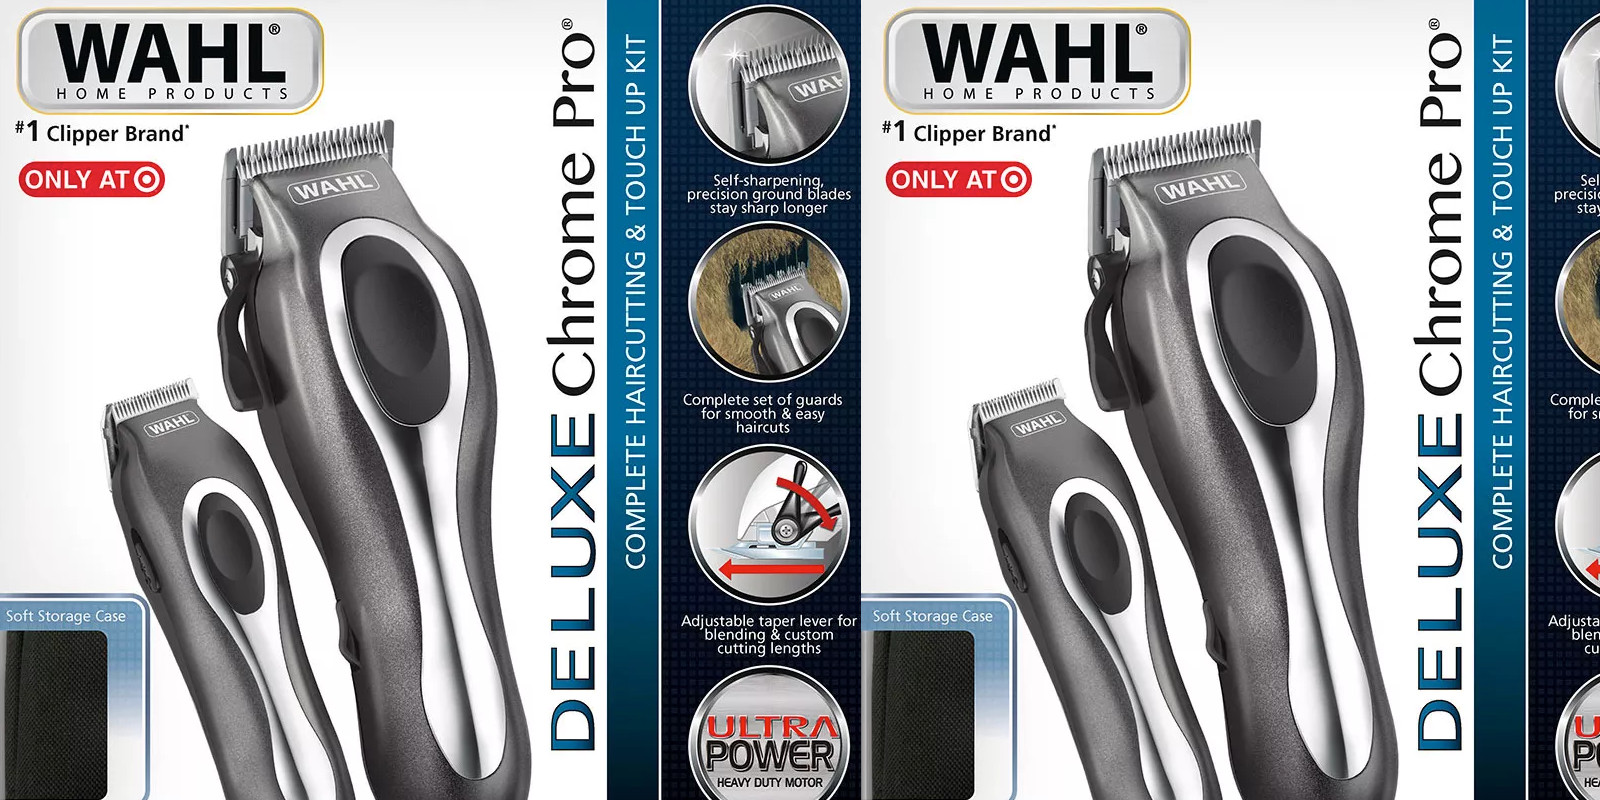 Wahl Pro Men's Haircut Kit with finishing trimmer now $24.50 (Reg. $35)